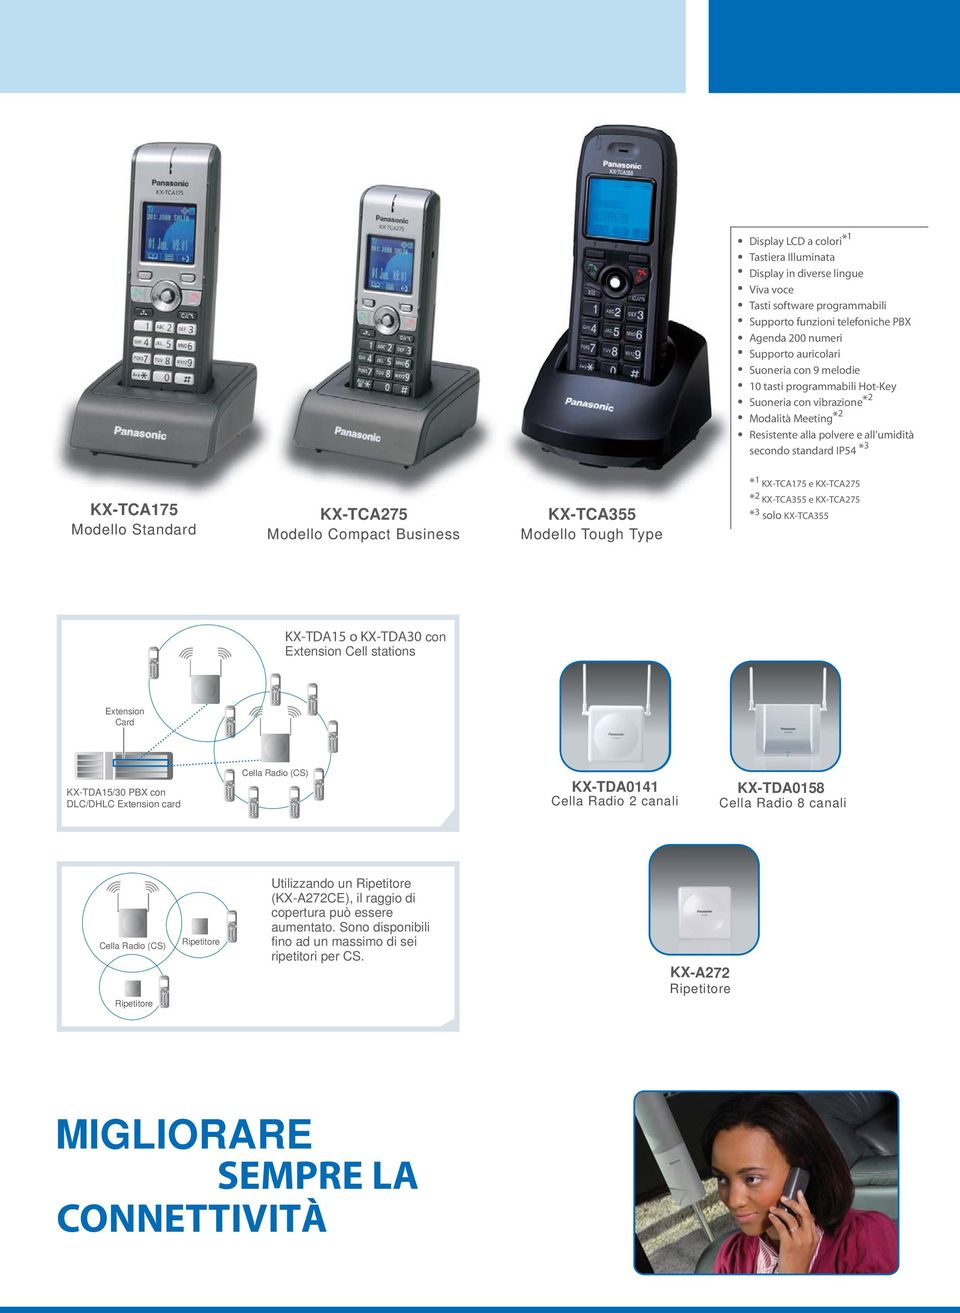 Compact Business KX-TCA355 Modello Tough Type * 1 KX-TCA175 e KX-TCA275 * 2 KX-TCA355 e KX-TCA275 * 3 solo KX-TCA355 KX-TDA15 o KX-TDA30 con Extension Cell stations Extension Card KX-TDA15/30 PBX con